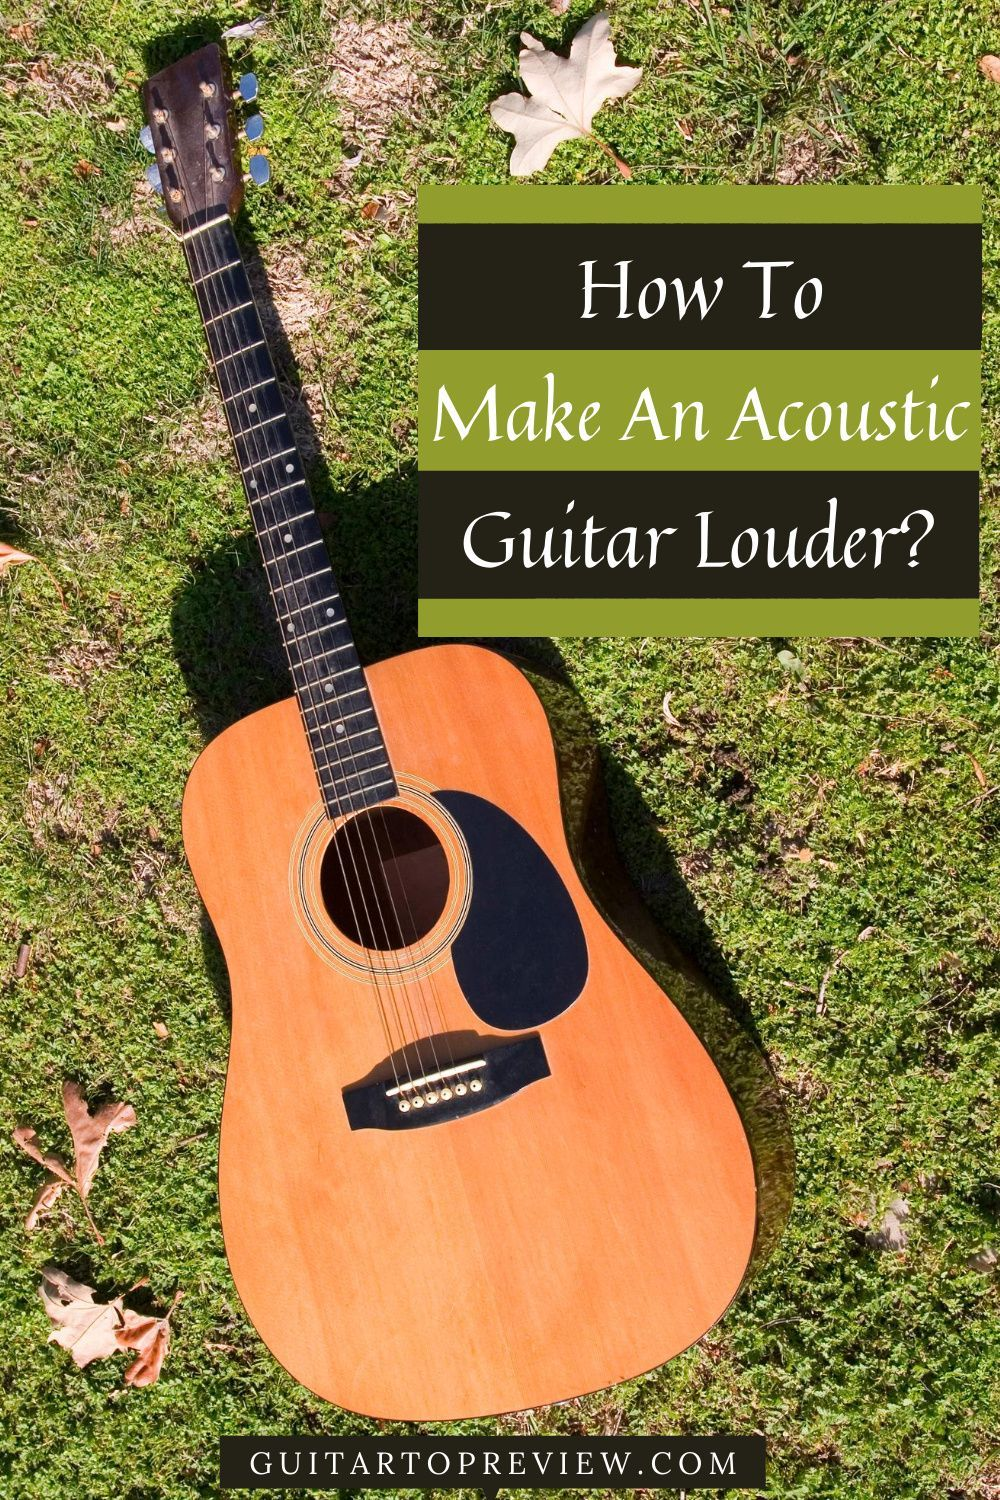 How To Make An Acoustic Guitar Louder Guitar Acoustic Guitar Electro Acoustic Guitar